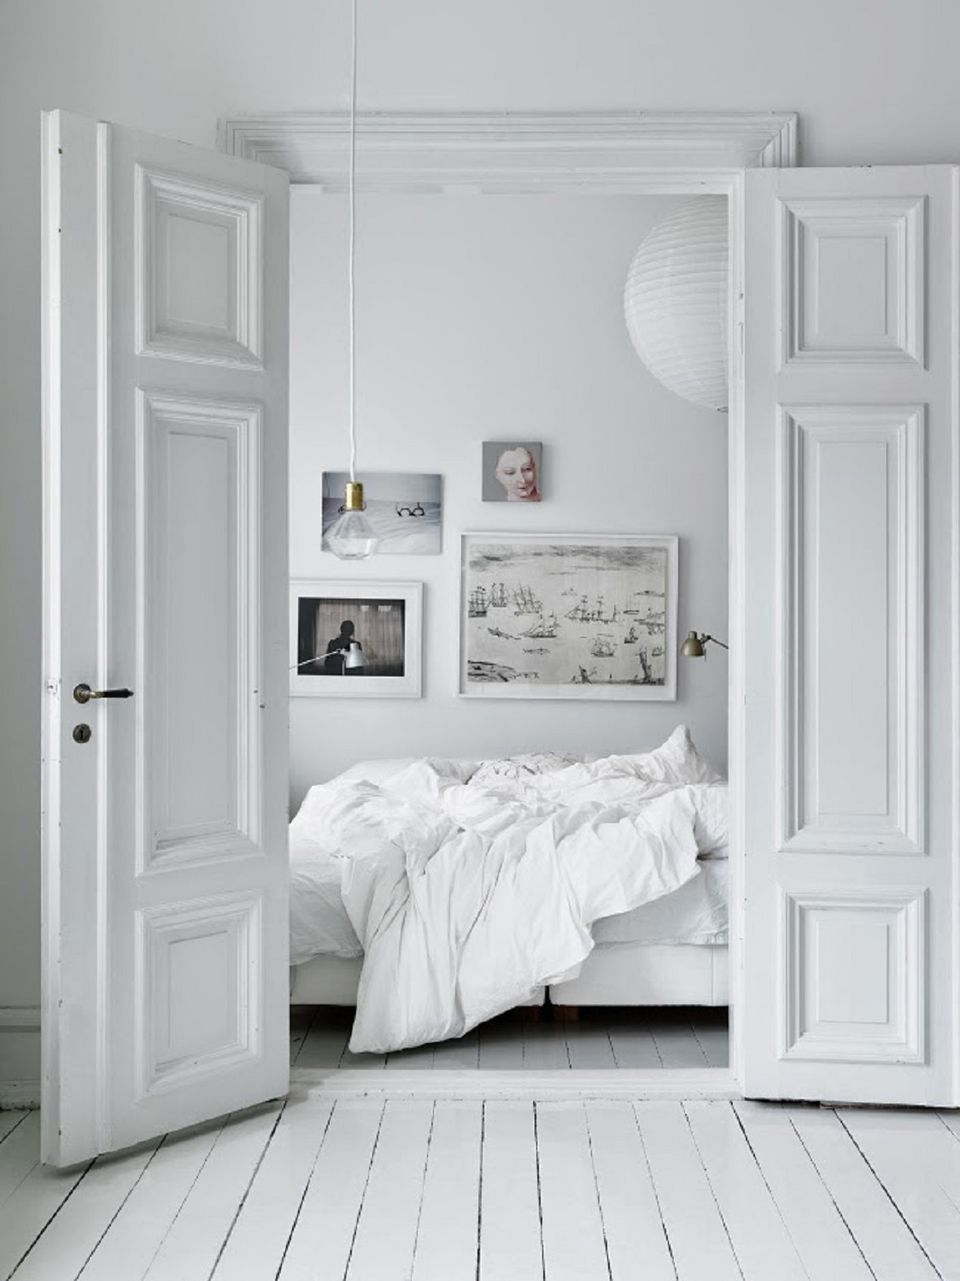 White Wooden Bedroom Floors. Small Scandinavian bedroom